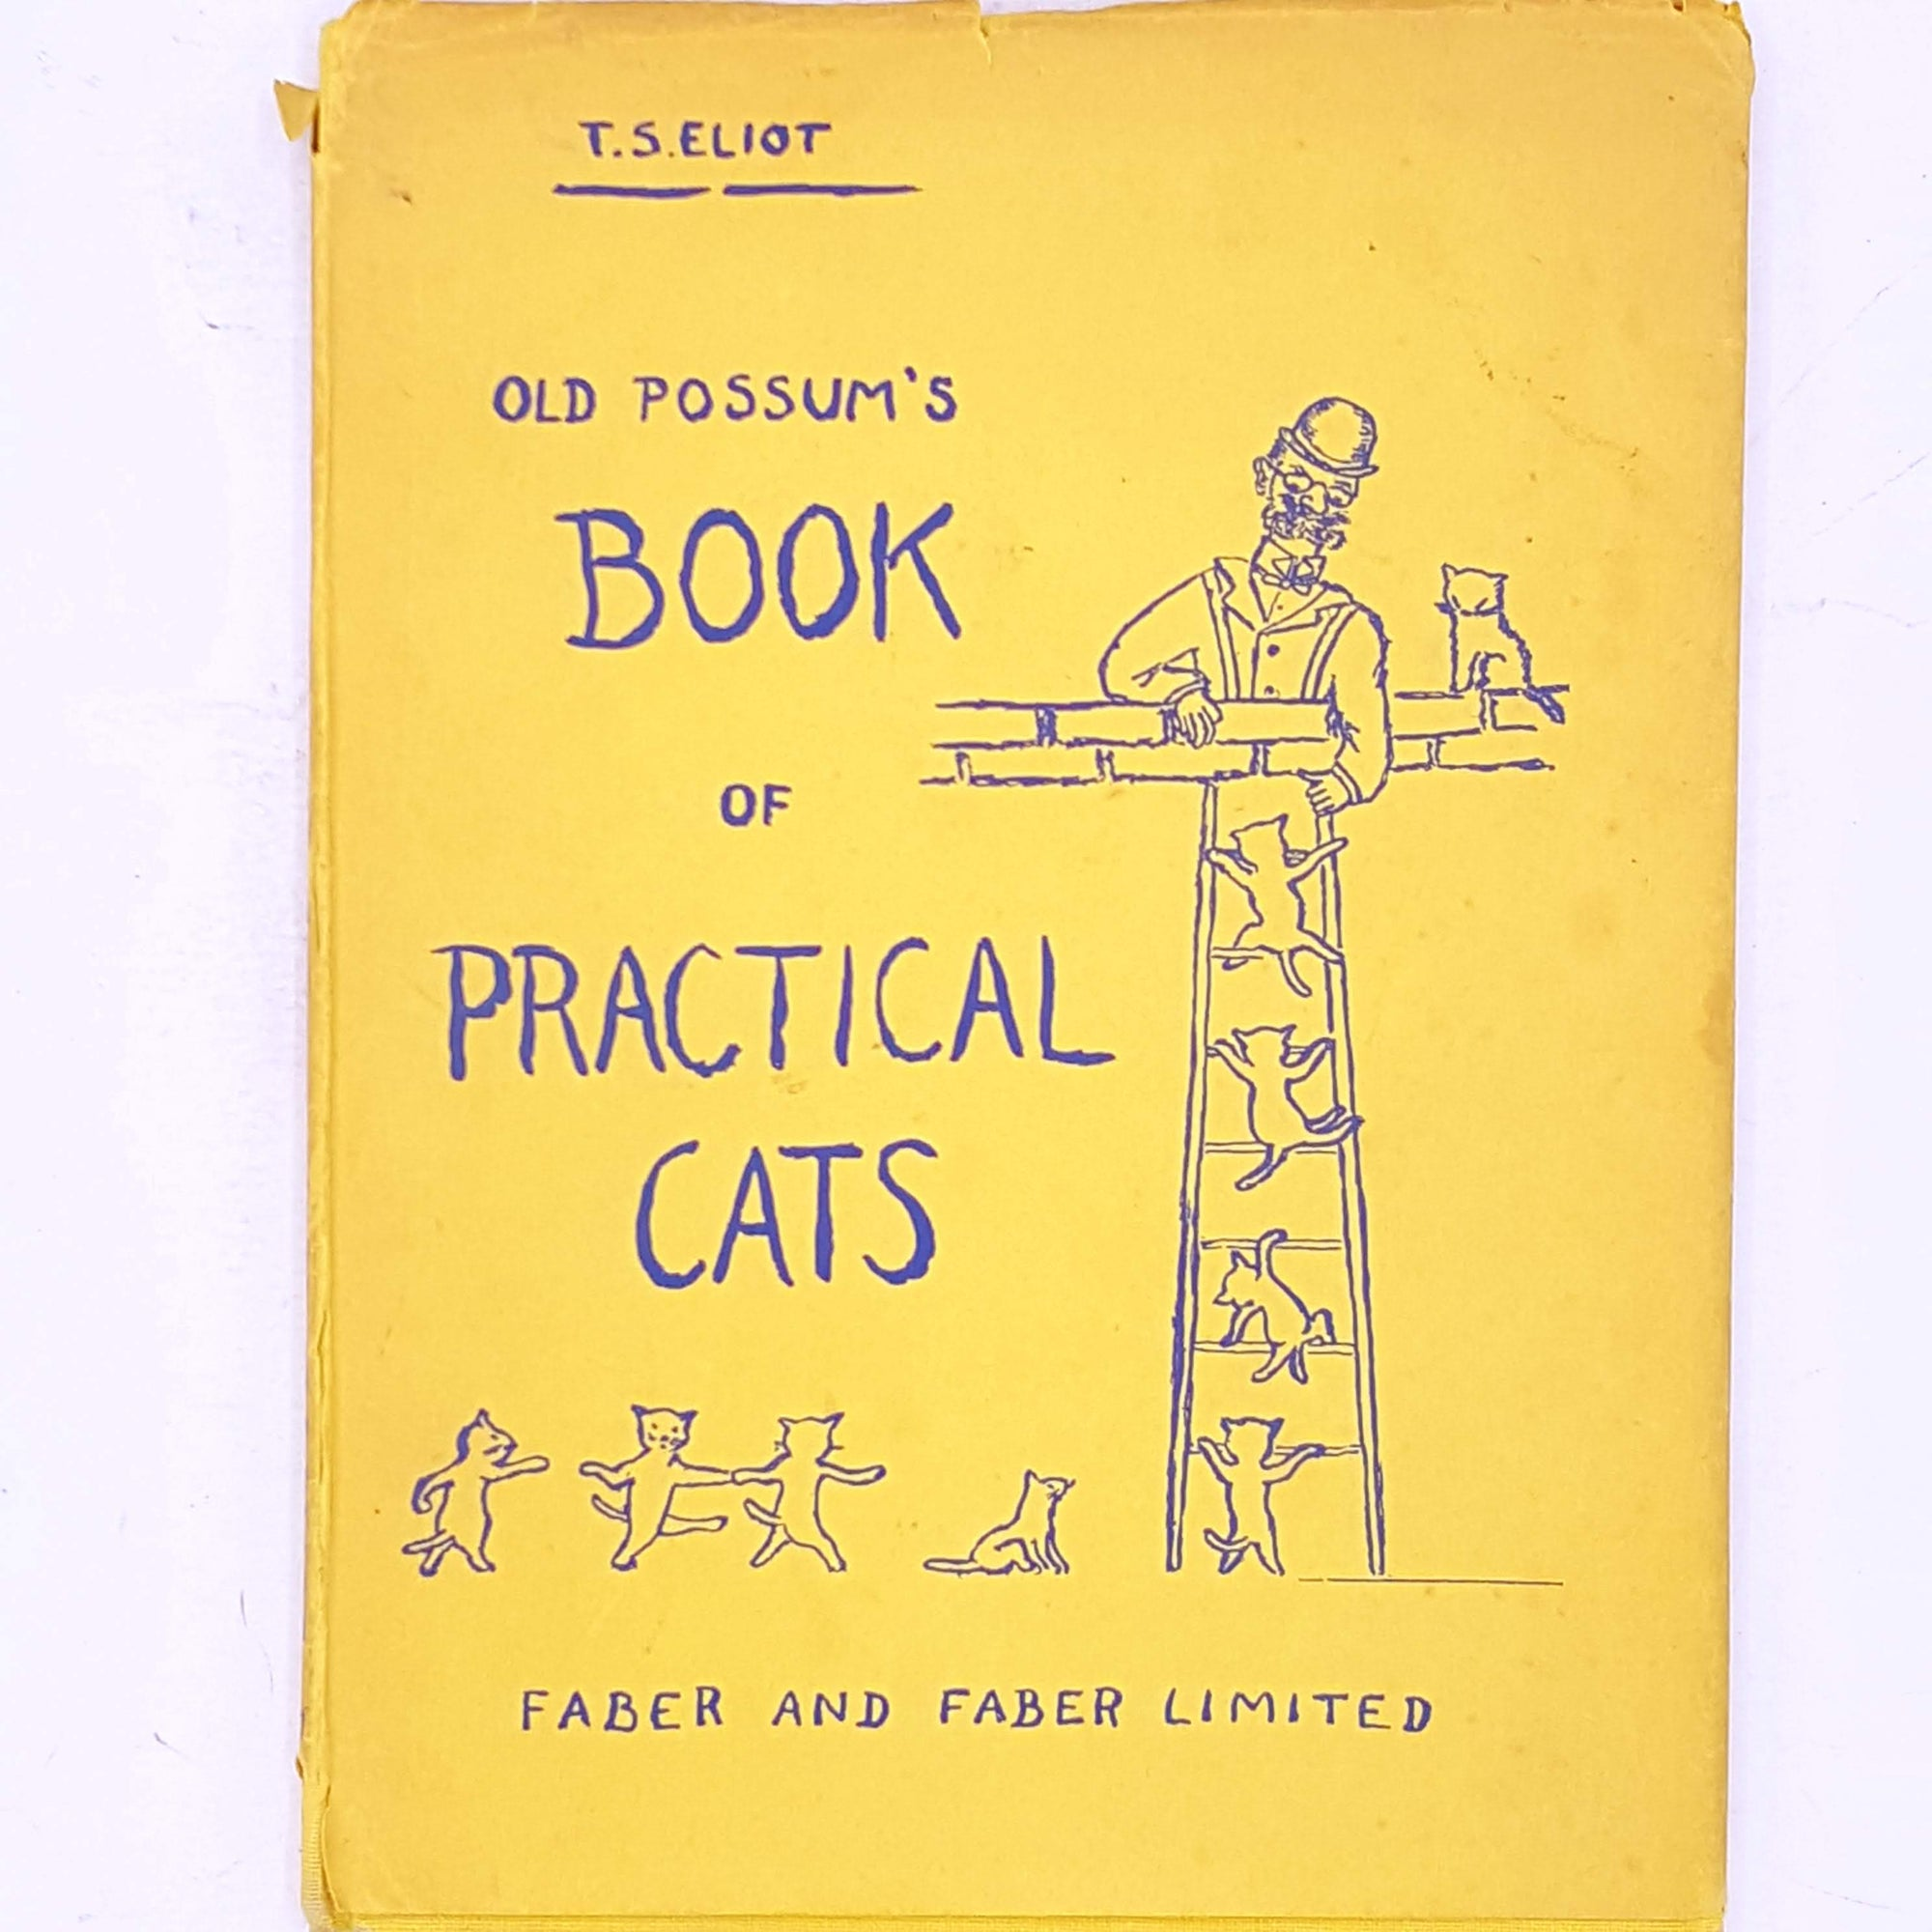 T.S. Eliot's Old Possum's Book of Practical Cats - Faber and Faber